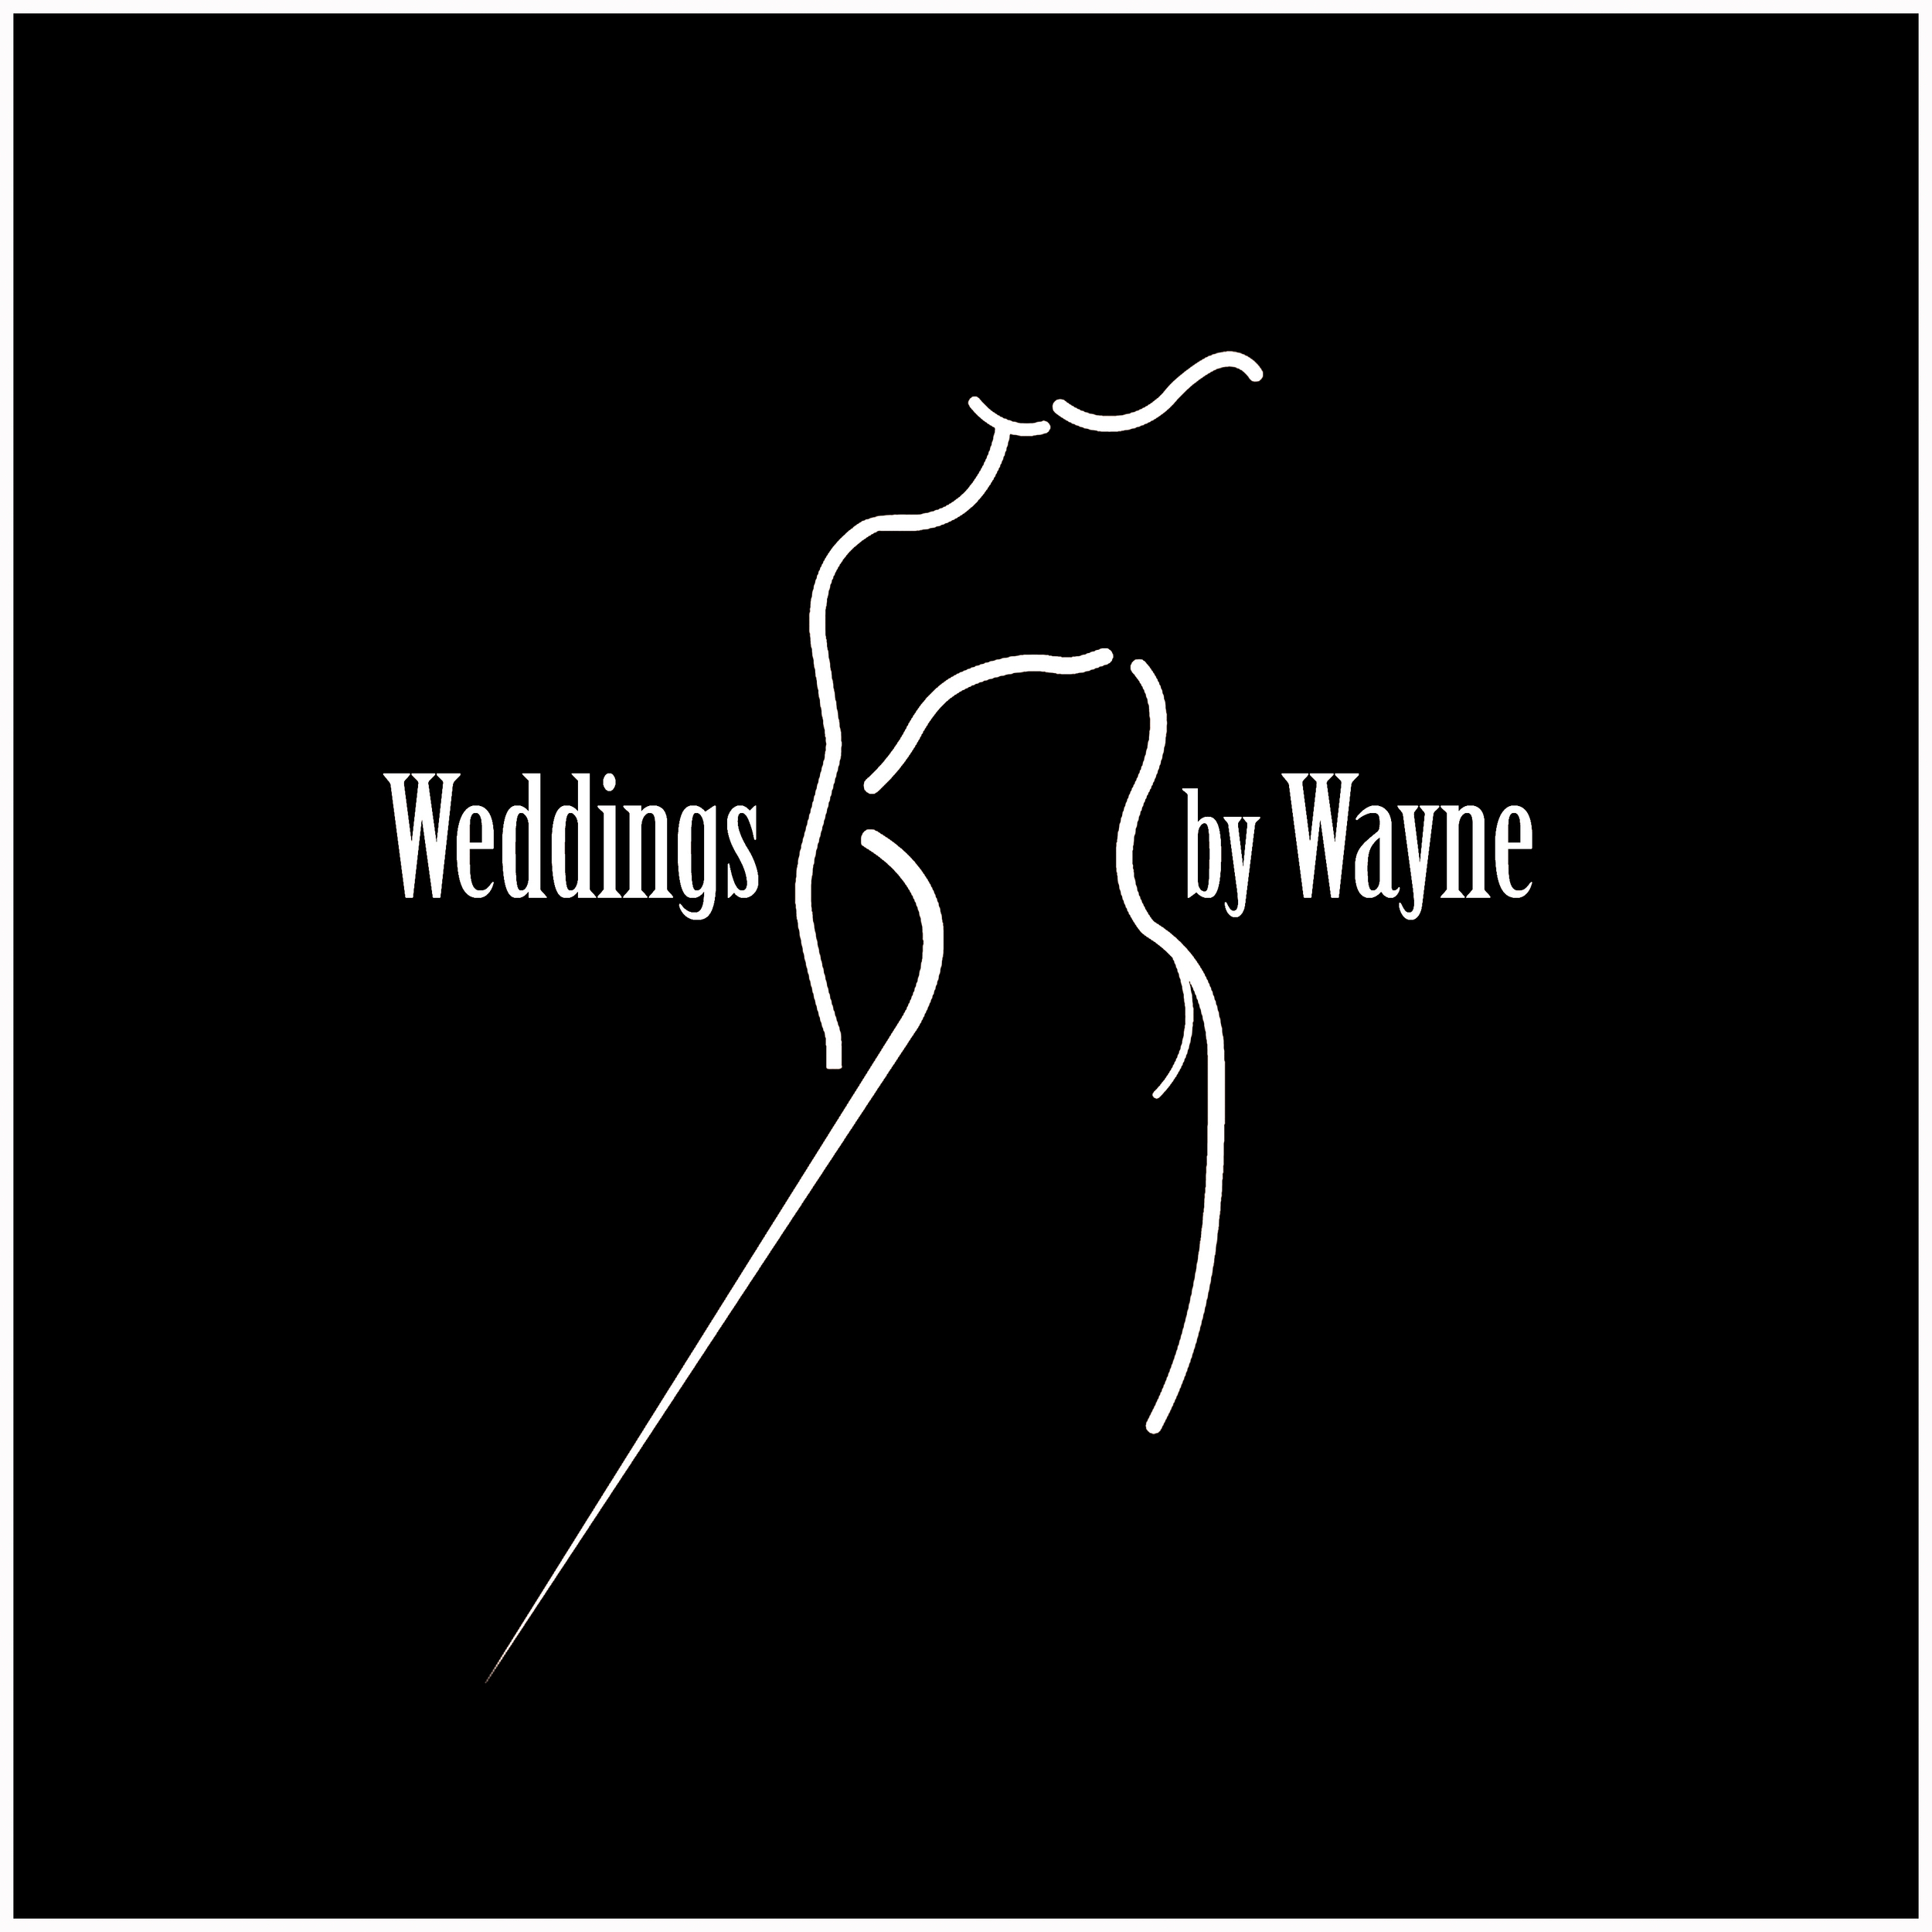 Weddings by Wayne